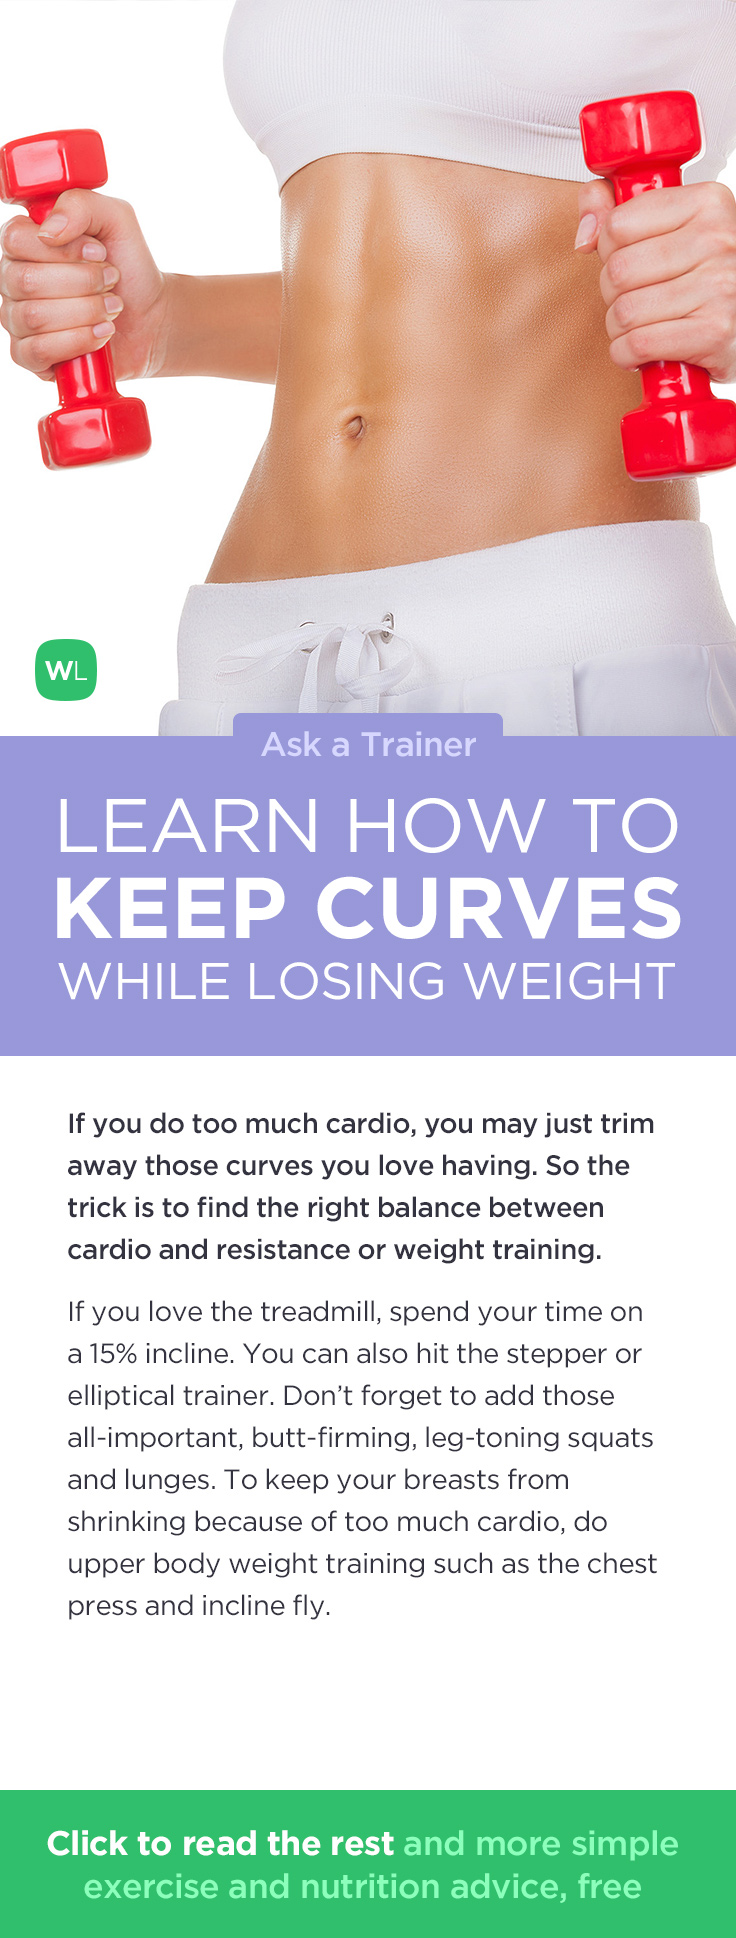 Will I Lose My Curves If I Work Out Excessively To Shed Belly Fat